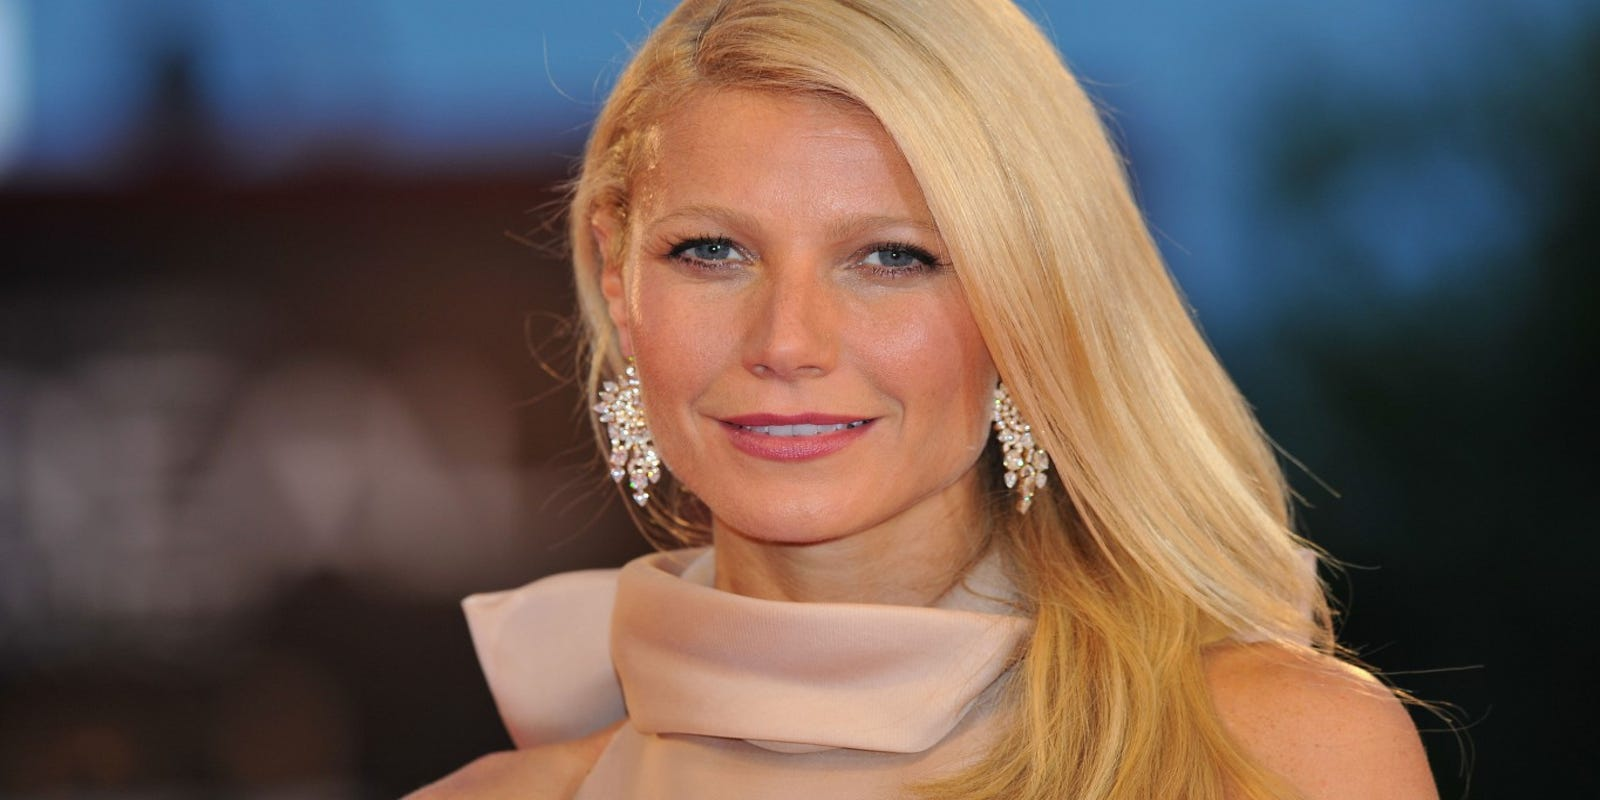 Gwyneth Paltrow poses for Instagram photo in 'nothing but my birthday suit' to celebrate turning 48 – USA TODAY